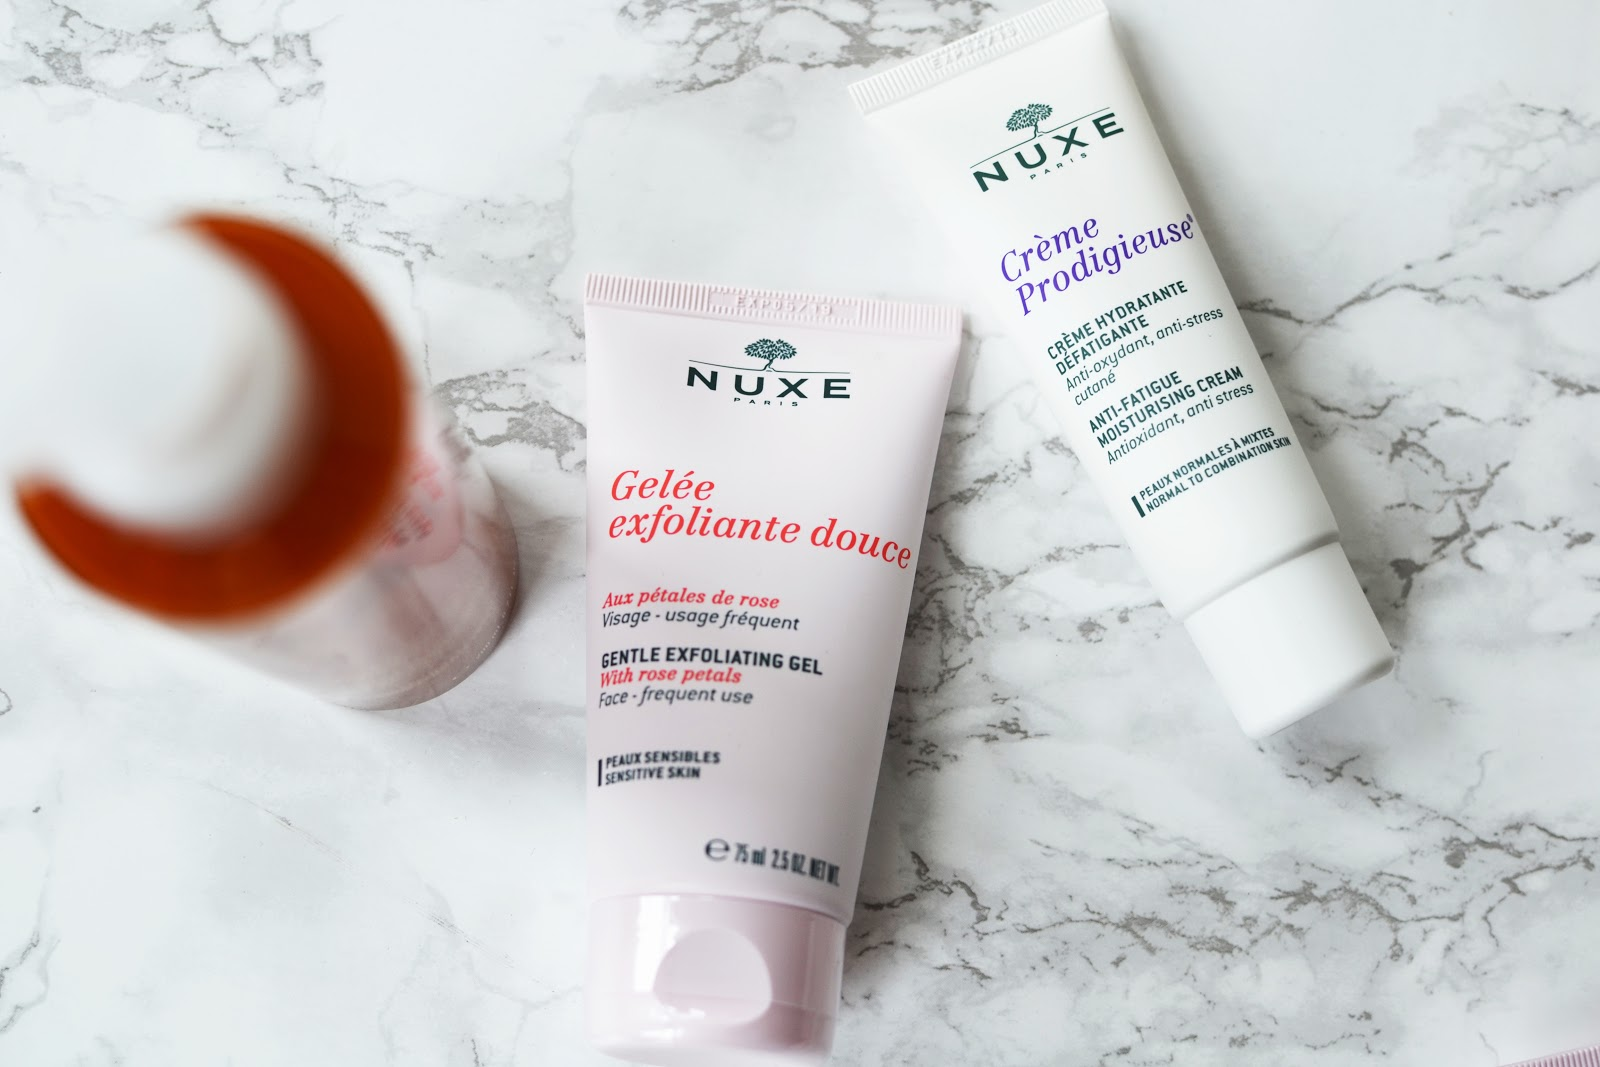 Winter Beauty: My Top 5 Nuxe Products